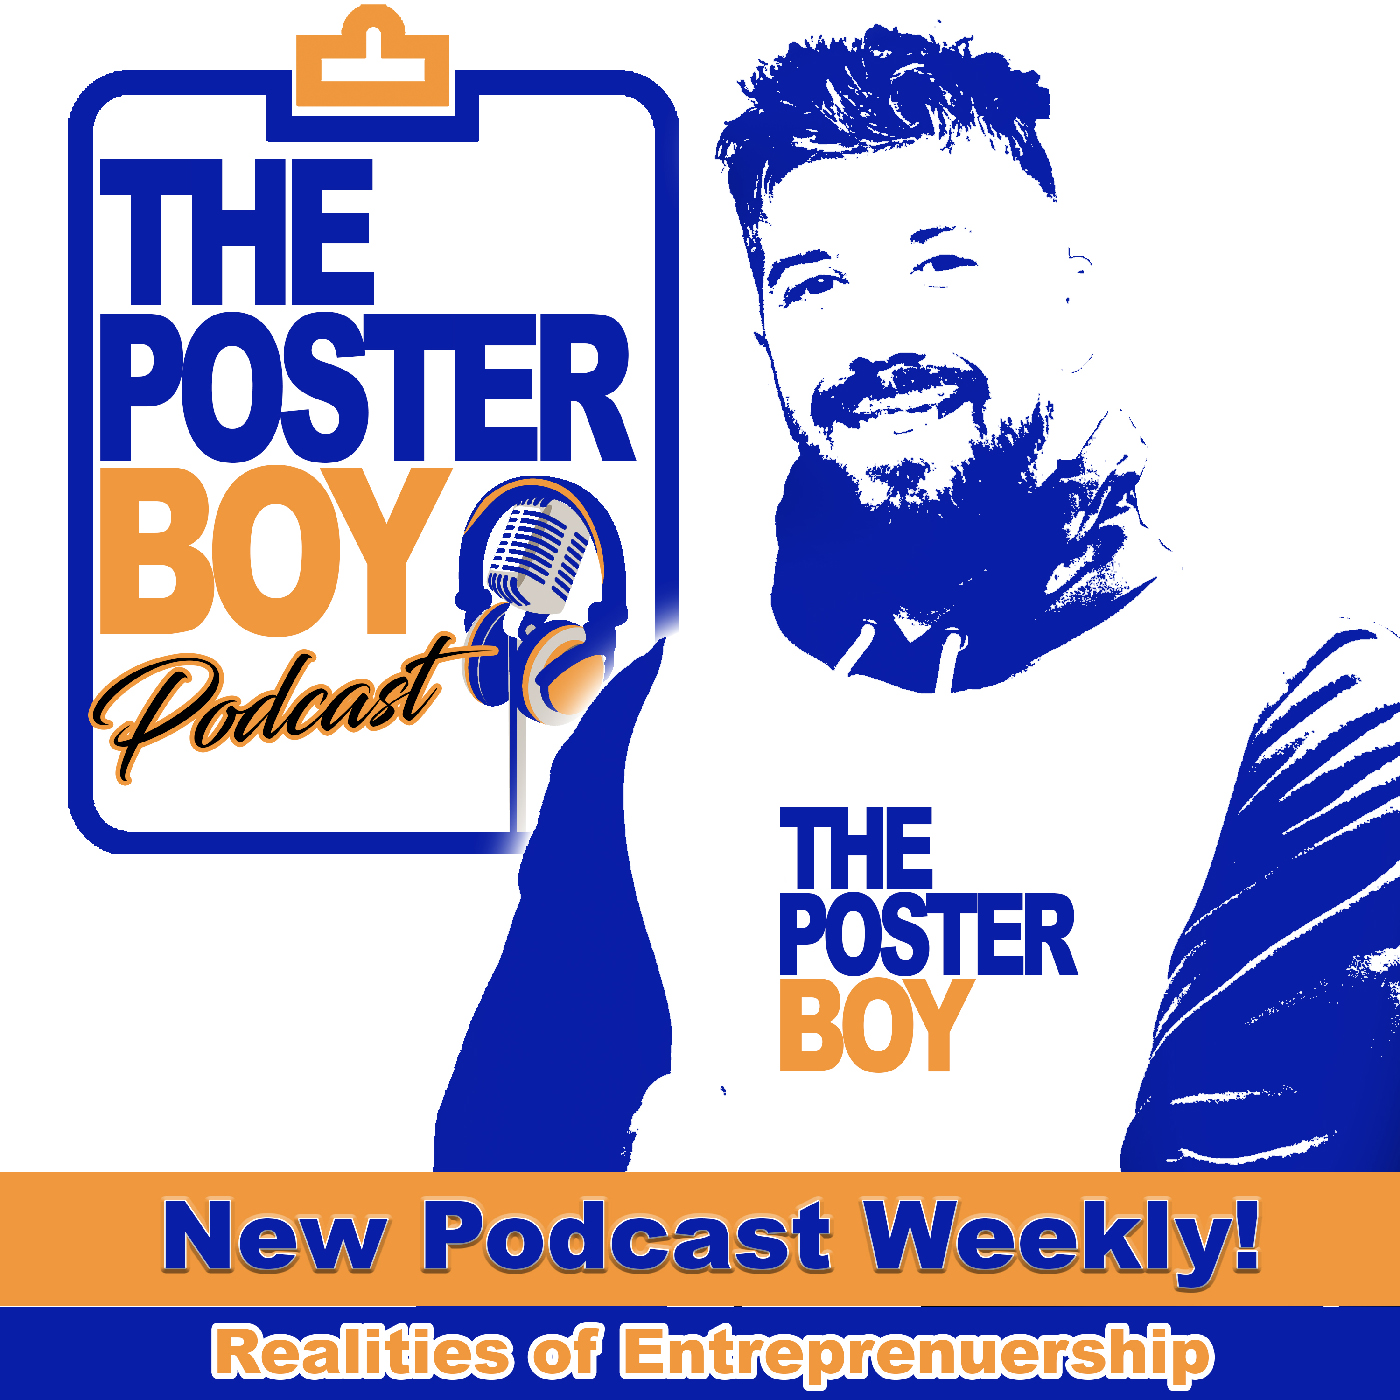 Listen to the Poster Boy Podcast